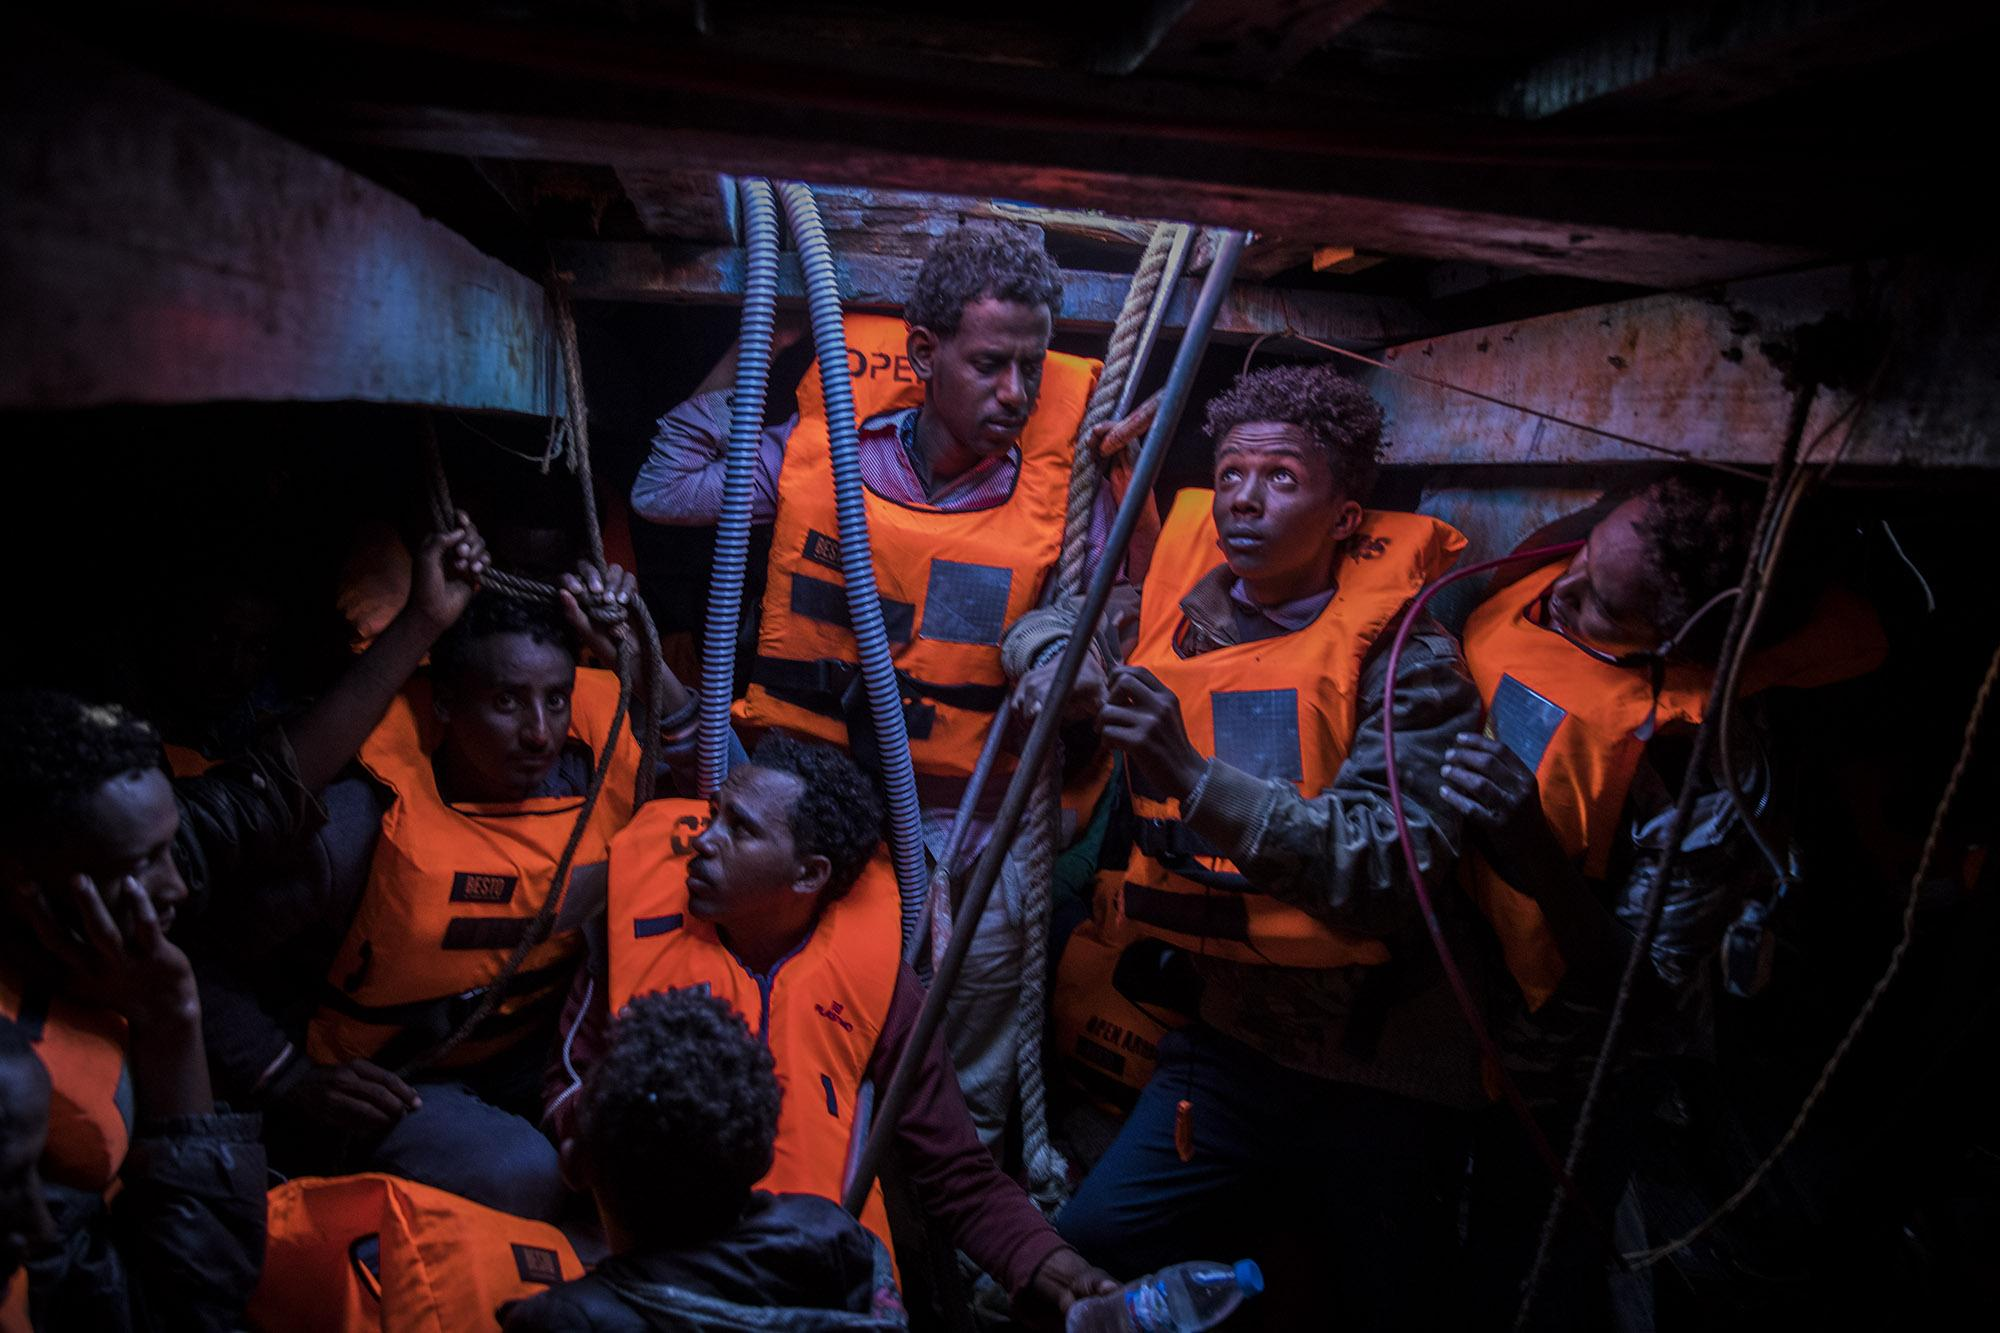 Men from Eritrea wait inside the lower deck of an overcrowded and drifting wooden boat to be rescued by aid workers of the Spanish NGO Open Arms, as they were trying to leave the Libyan coast and reach European soil with 500 other migrants. One of the babies on board had already died when the rescuers arrived, a young man and one more baby passed away during the rescue operation, 34 miles north of Kasr-El-Karabulli, Libya, Tuesday Jan. 16, 2018. (© Santi Palacios)